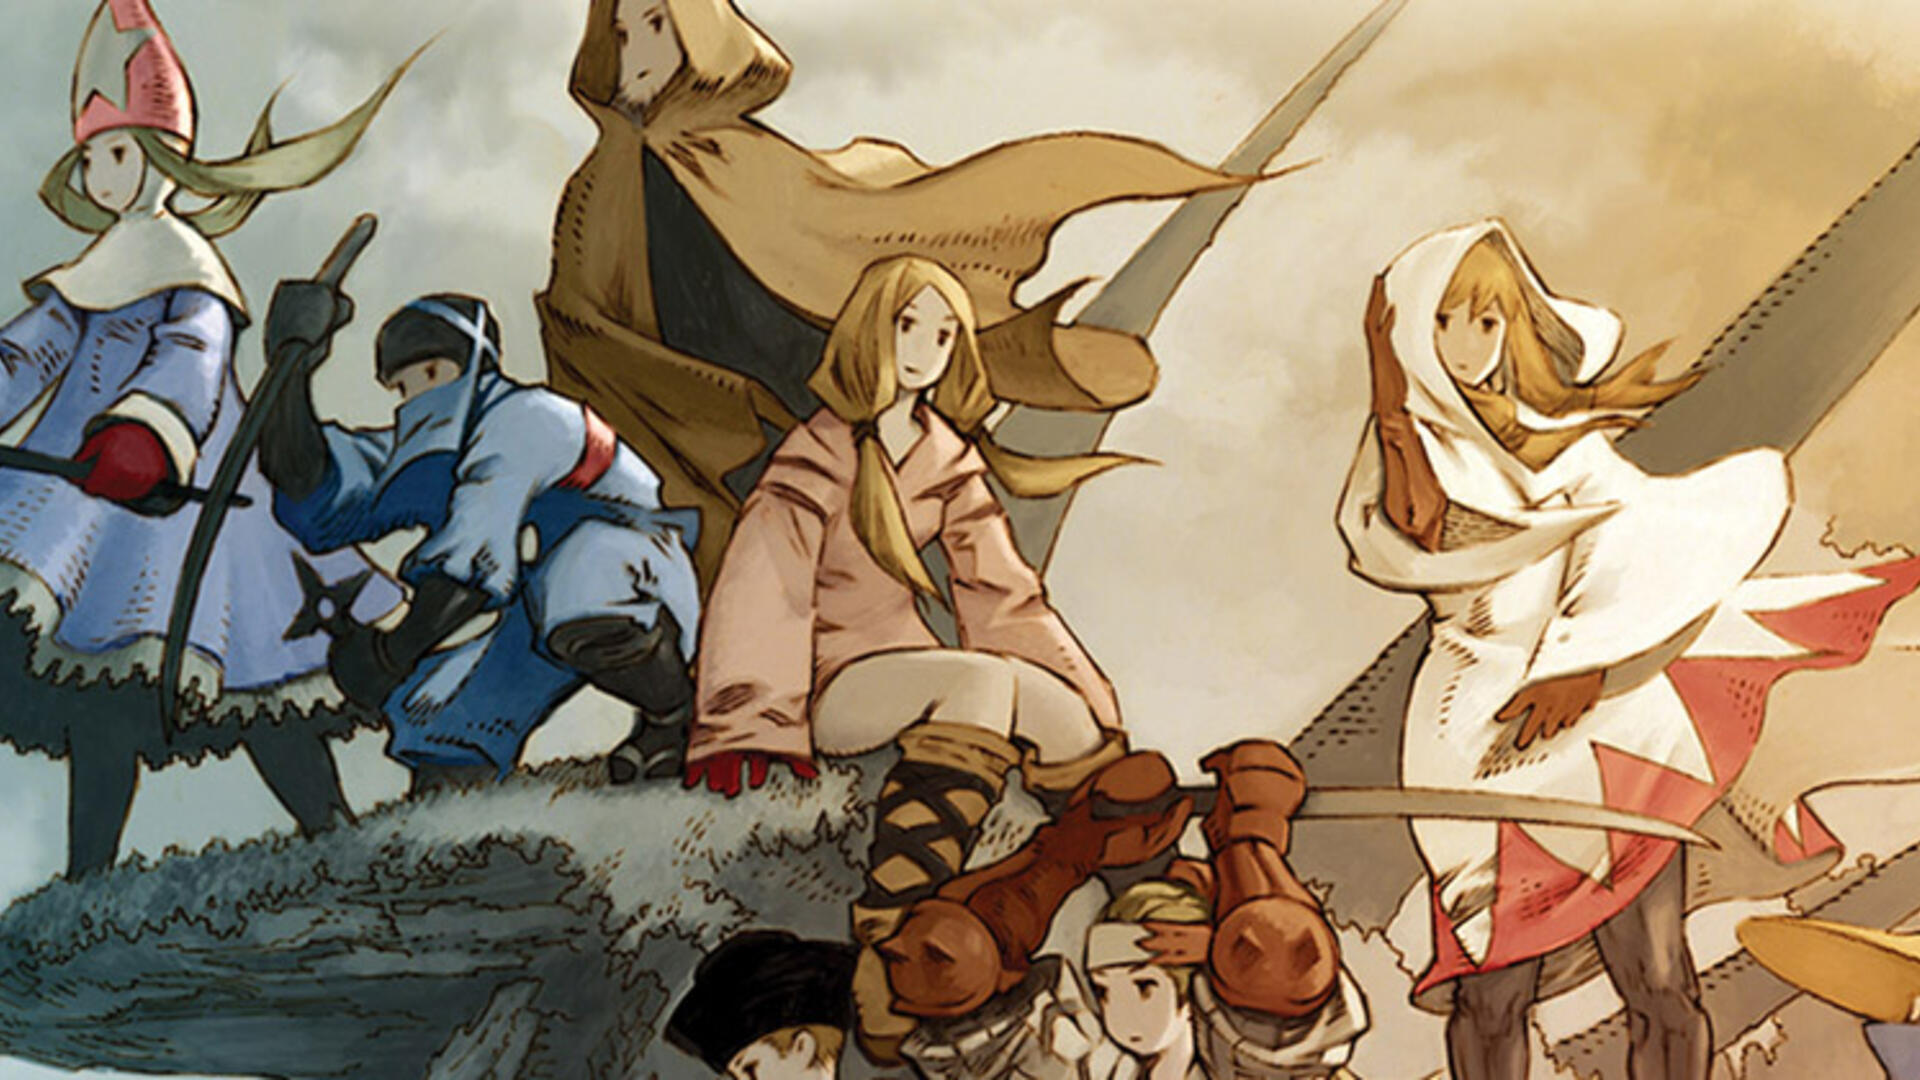 USgamer Club: Final Fantasy Tactics, Chapter 3 | USgamer